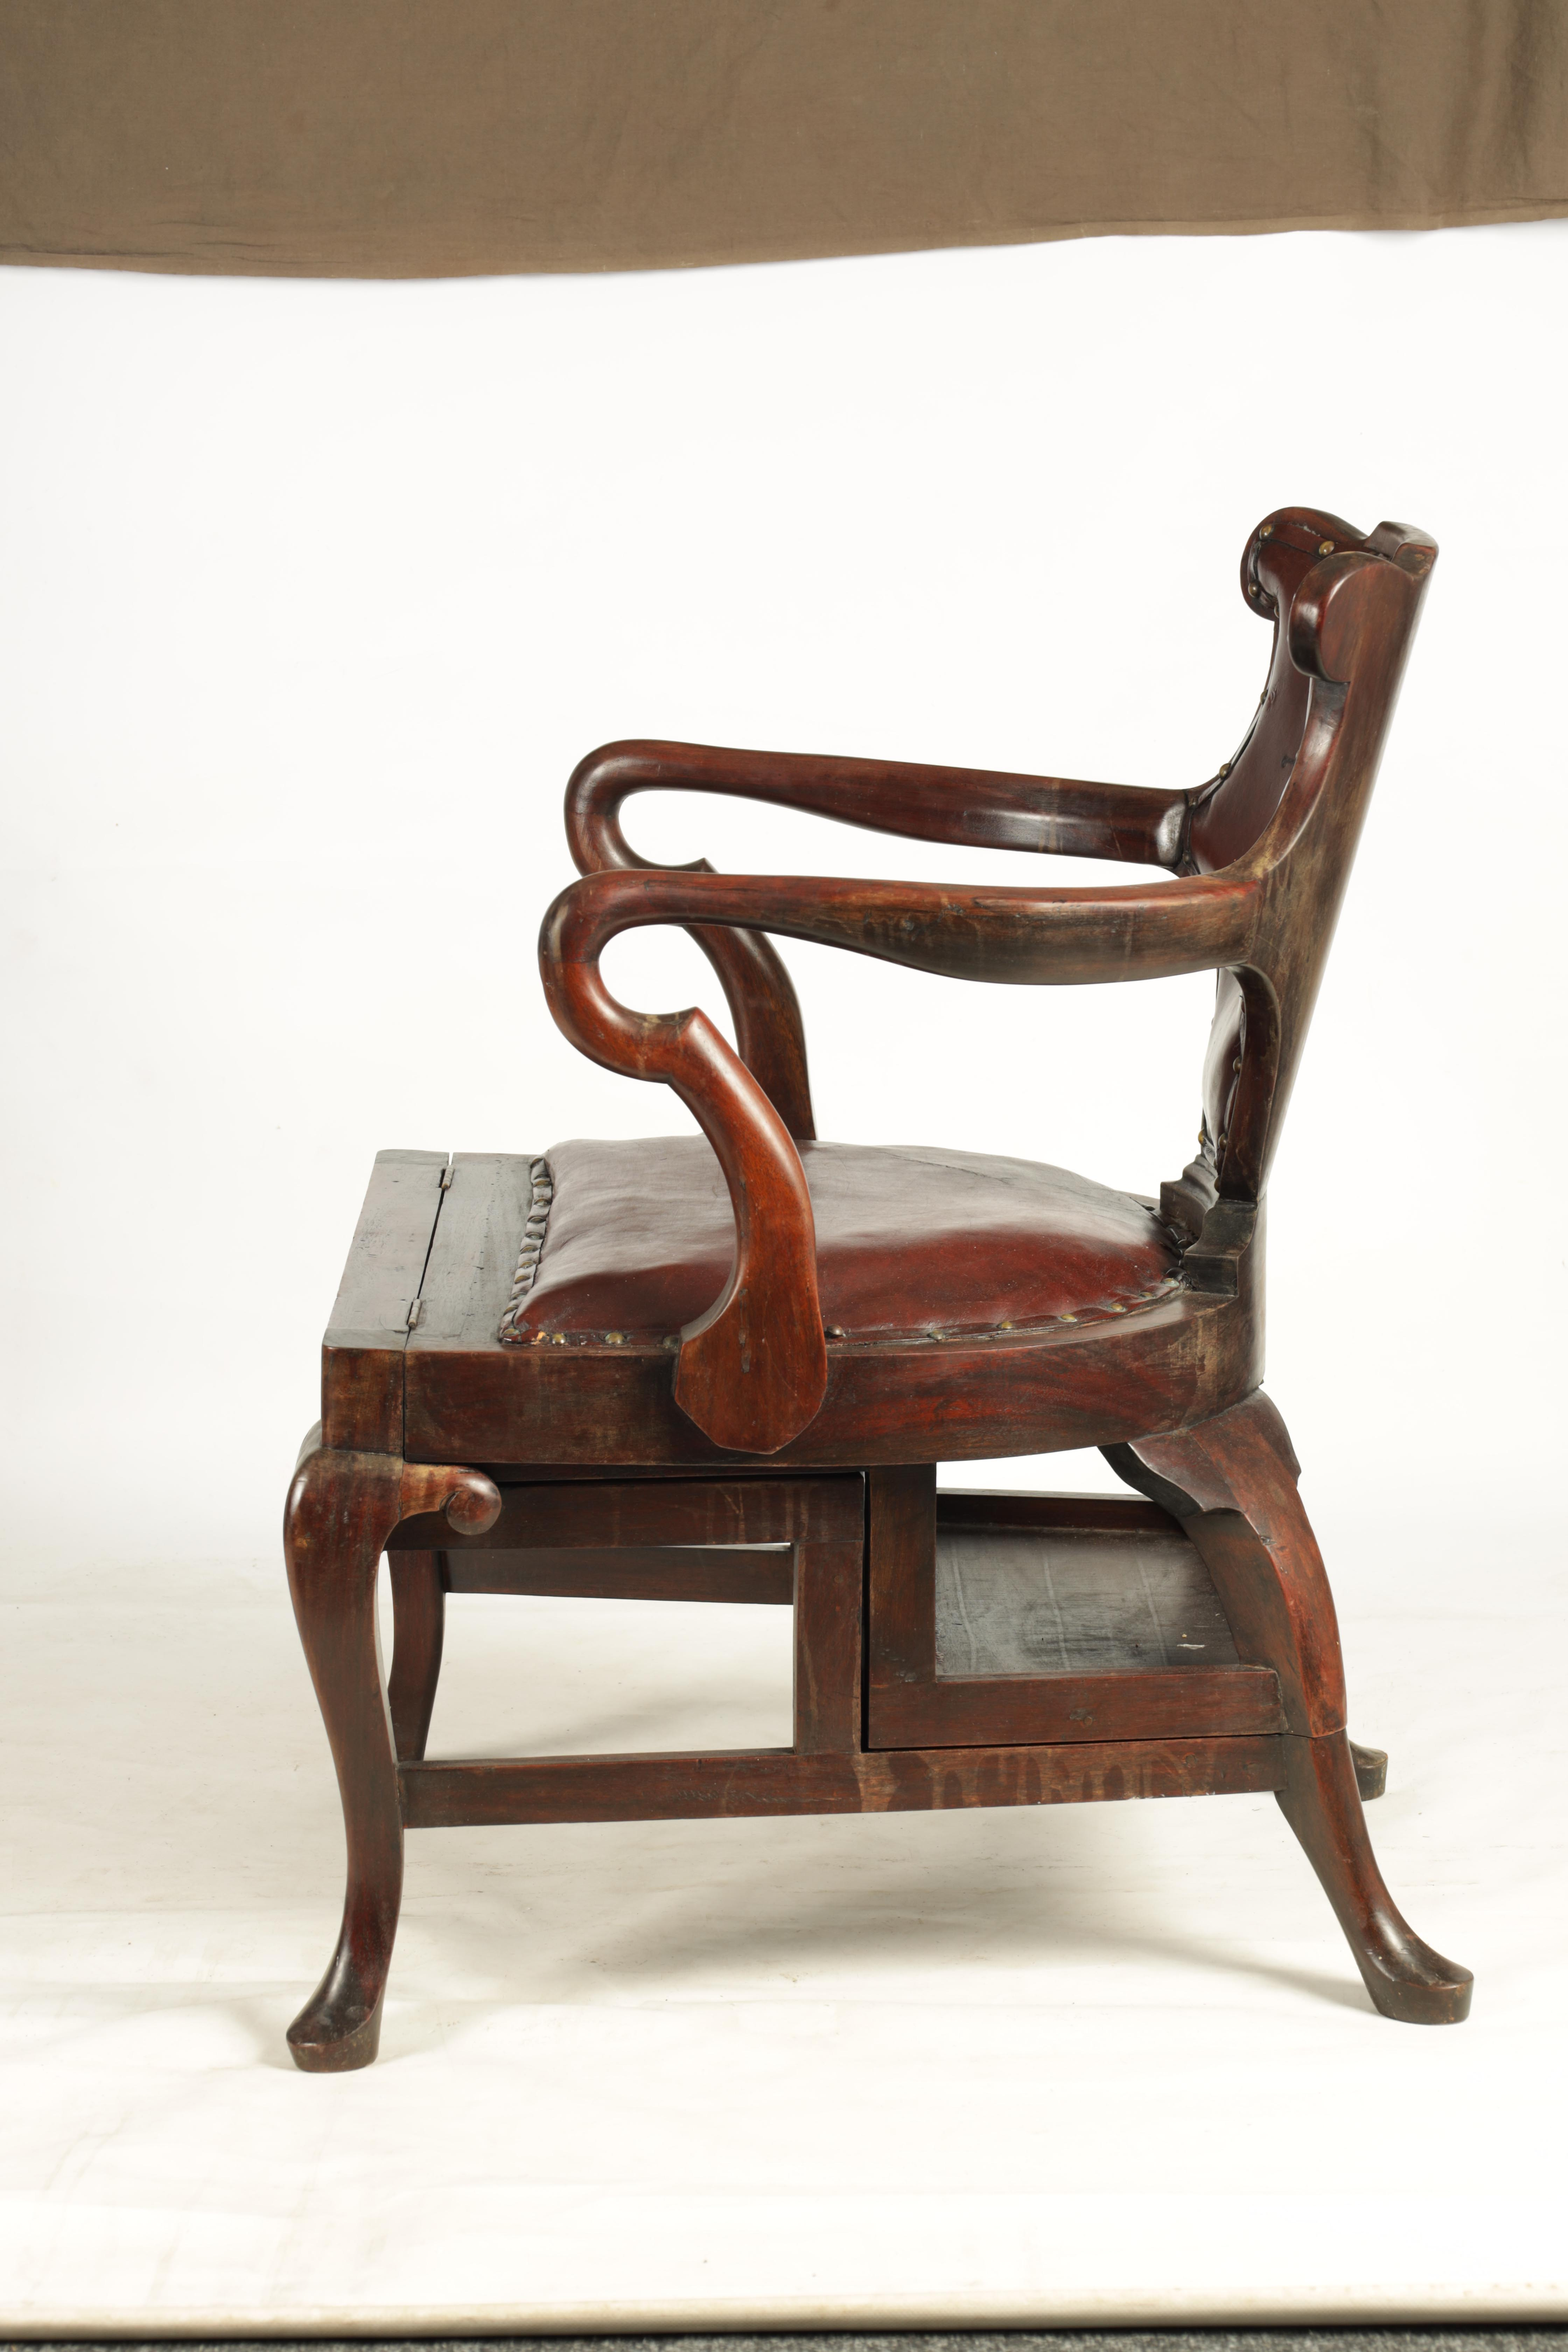 A 19TH CENTURY GEORGE II STYLE METAMORPHIC ARMCHAIR/LIBRARY STEPS with shaped back and crook arms - Image 5 of 8